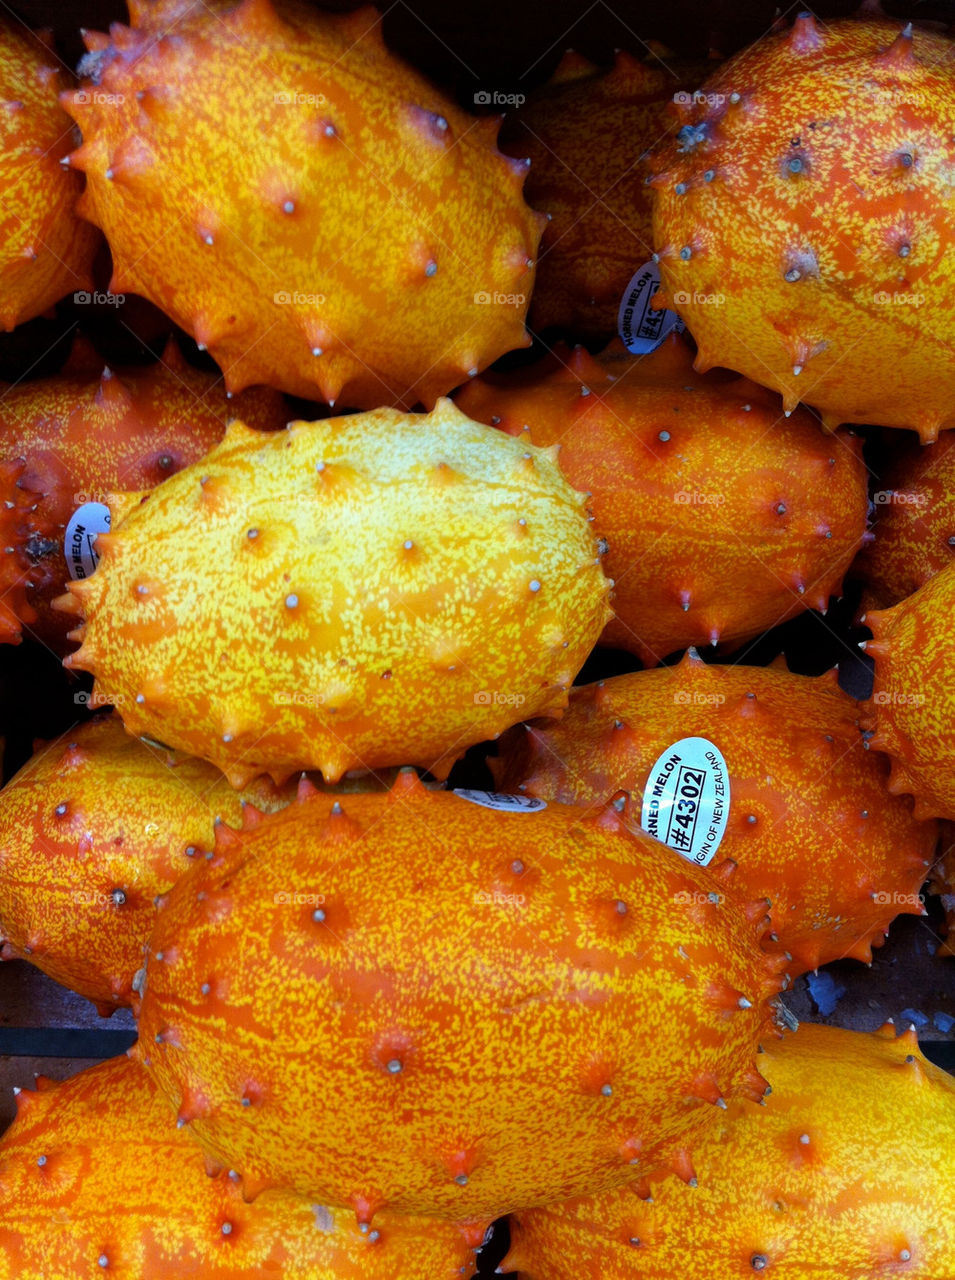 Kiwano Melon located at an American midwestern market.